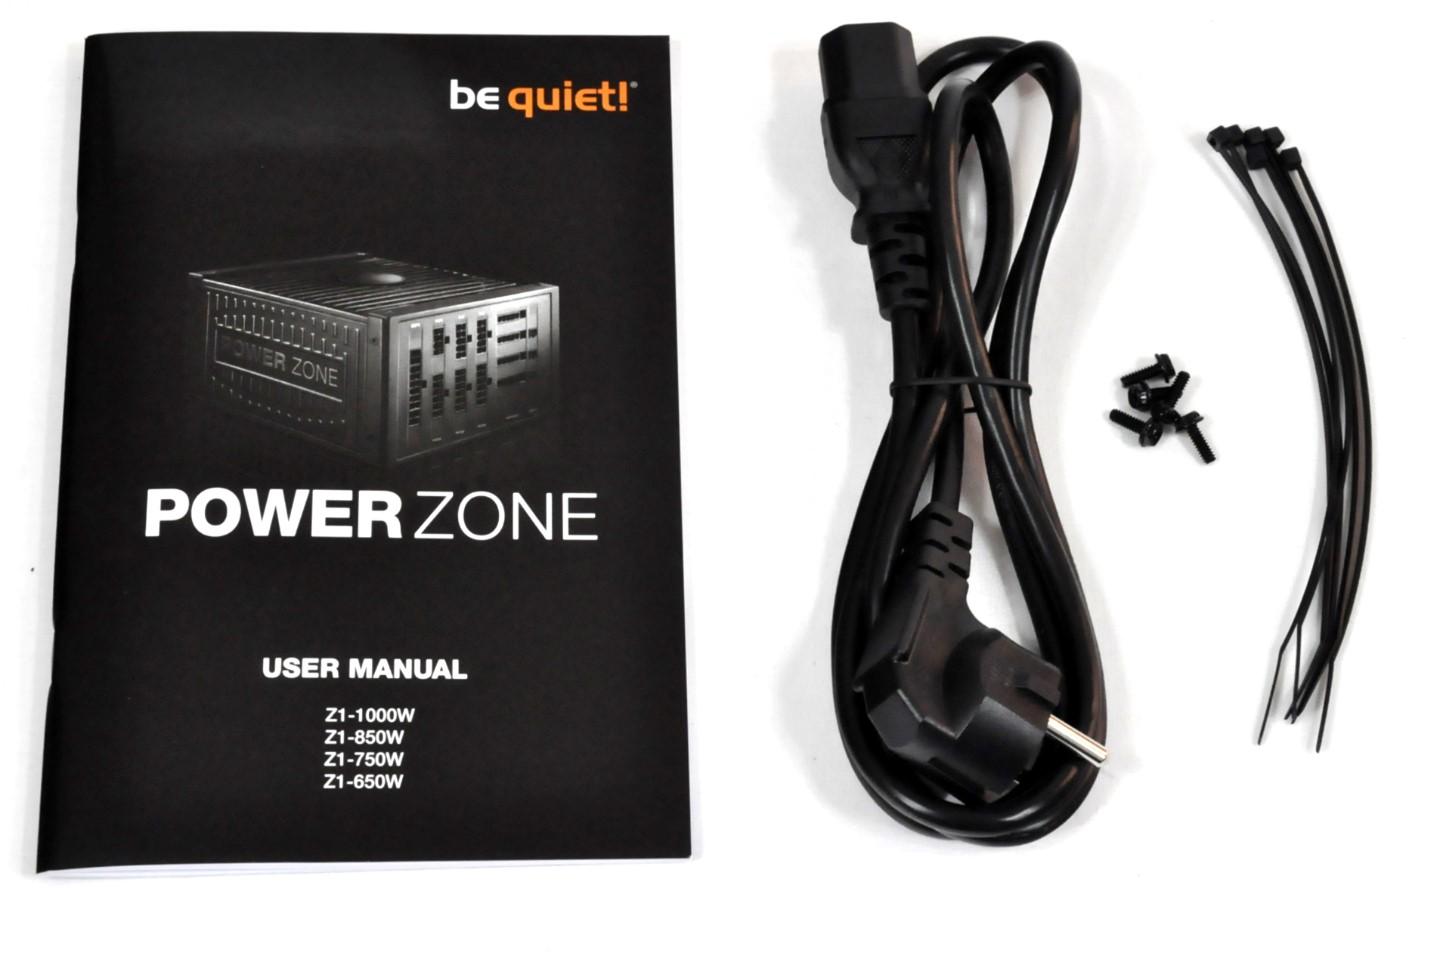 be quiet! Power Zone 850W CM Power Supply Review